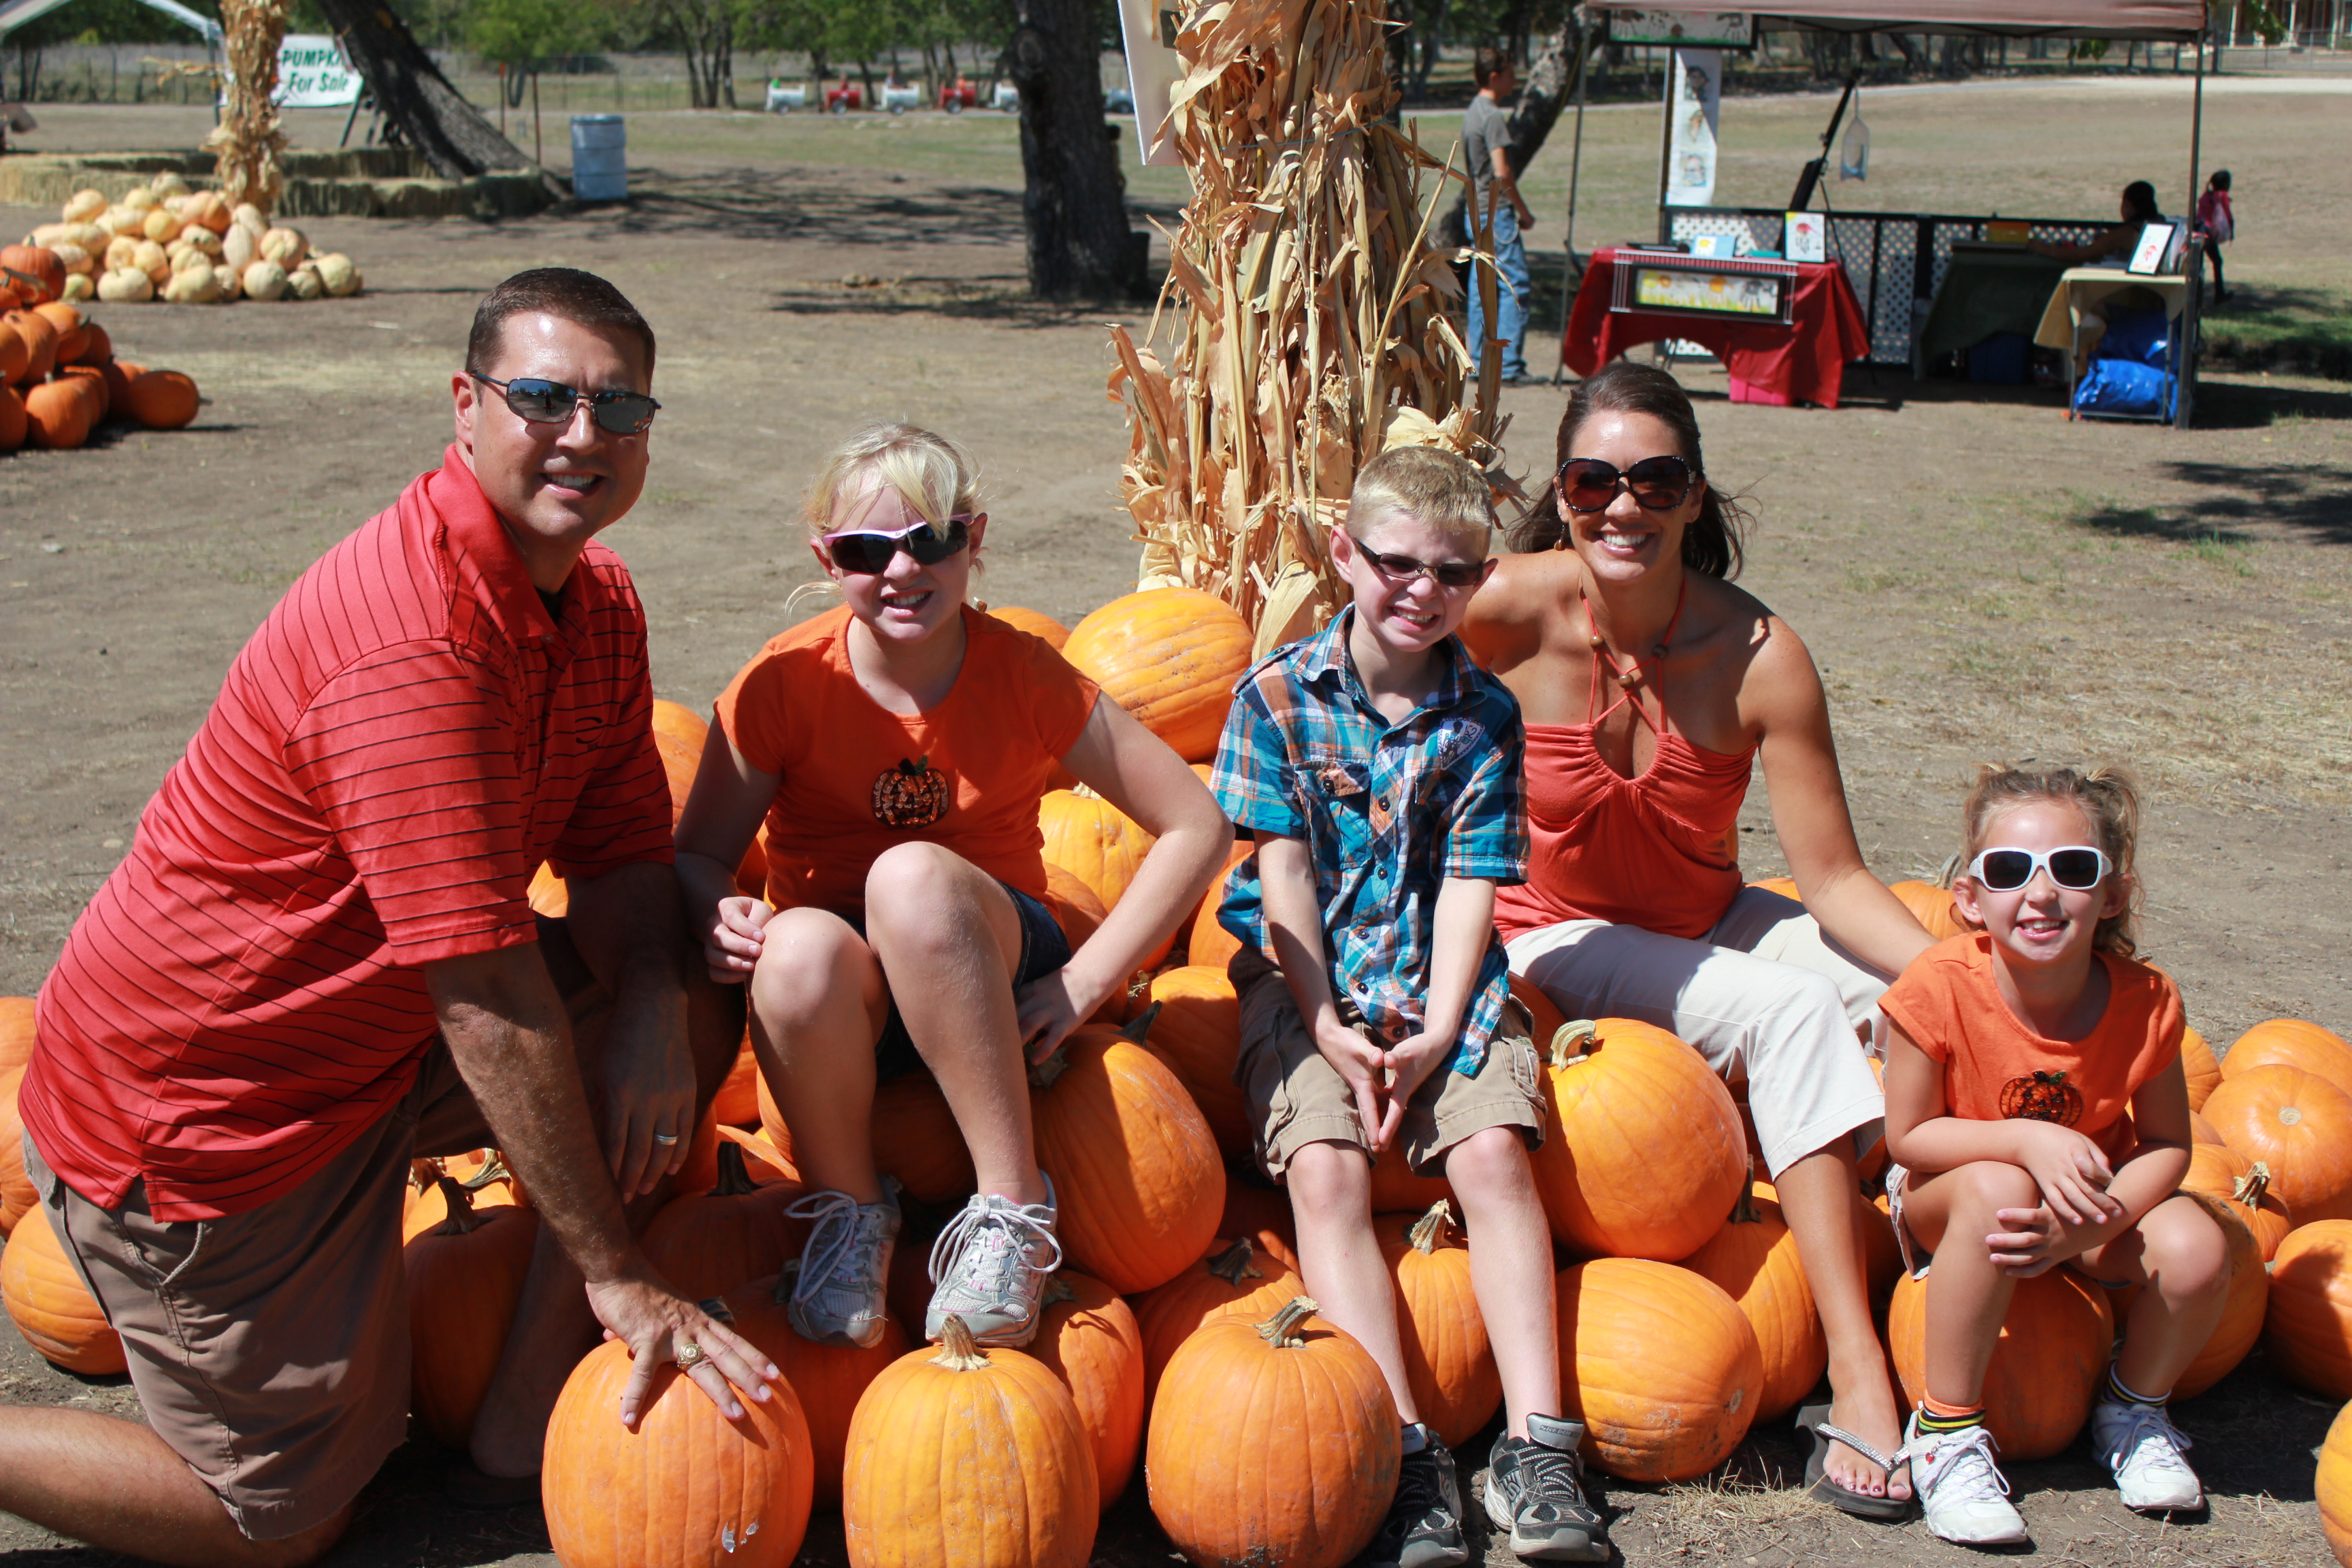 The girls: not your ordinary trip to the pumpkin patch: love creek.